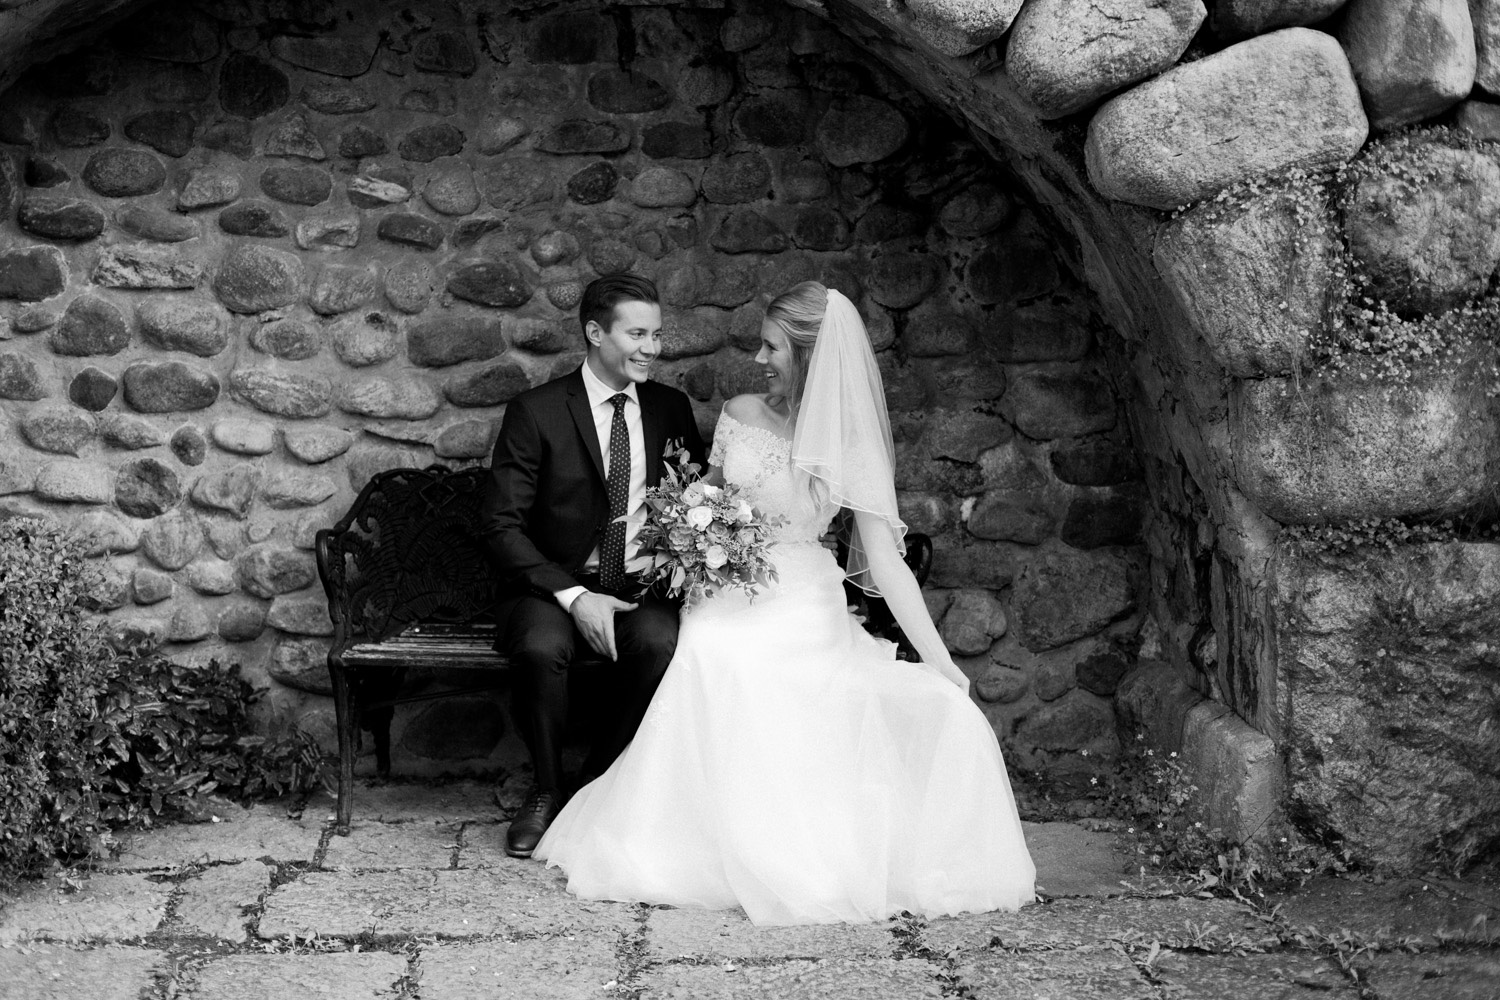 026-sweden-vidbynäs-wedding-photographer-bröllopsfotograf.jpg